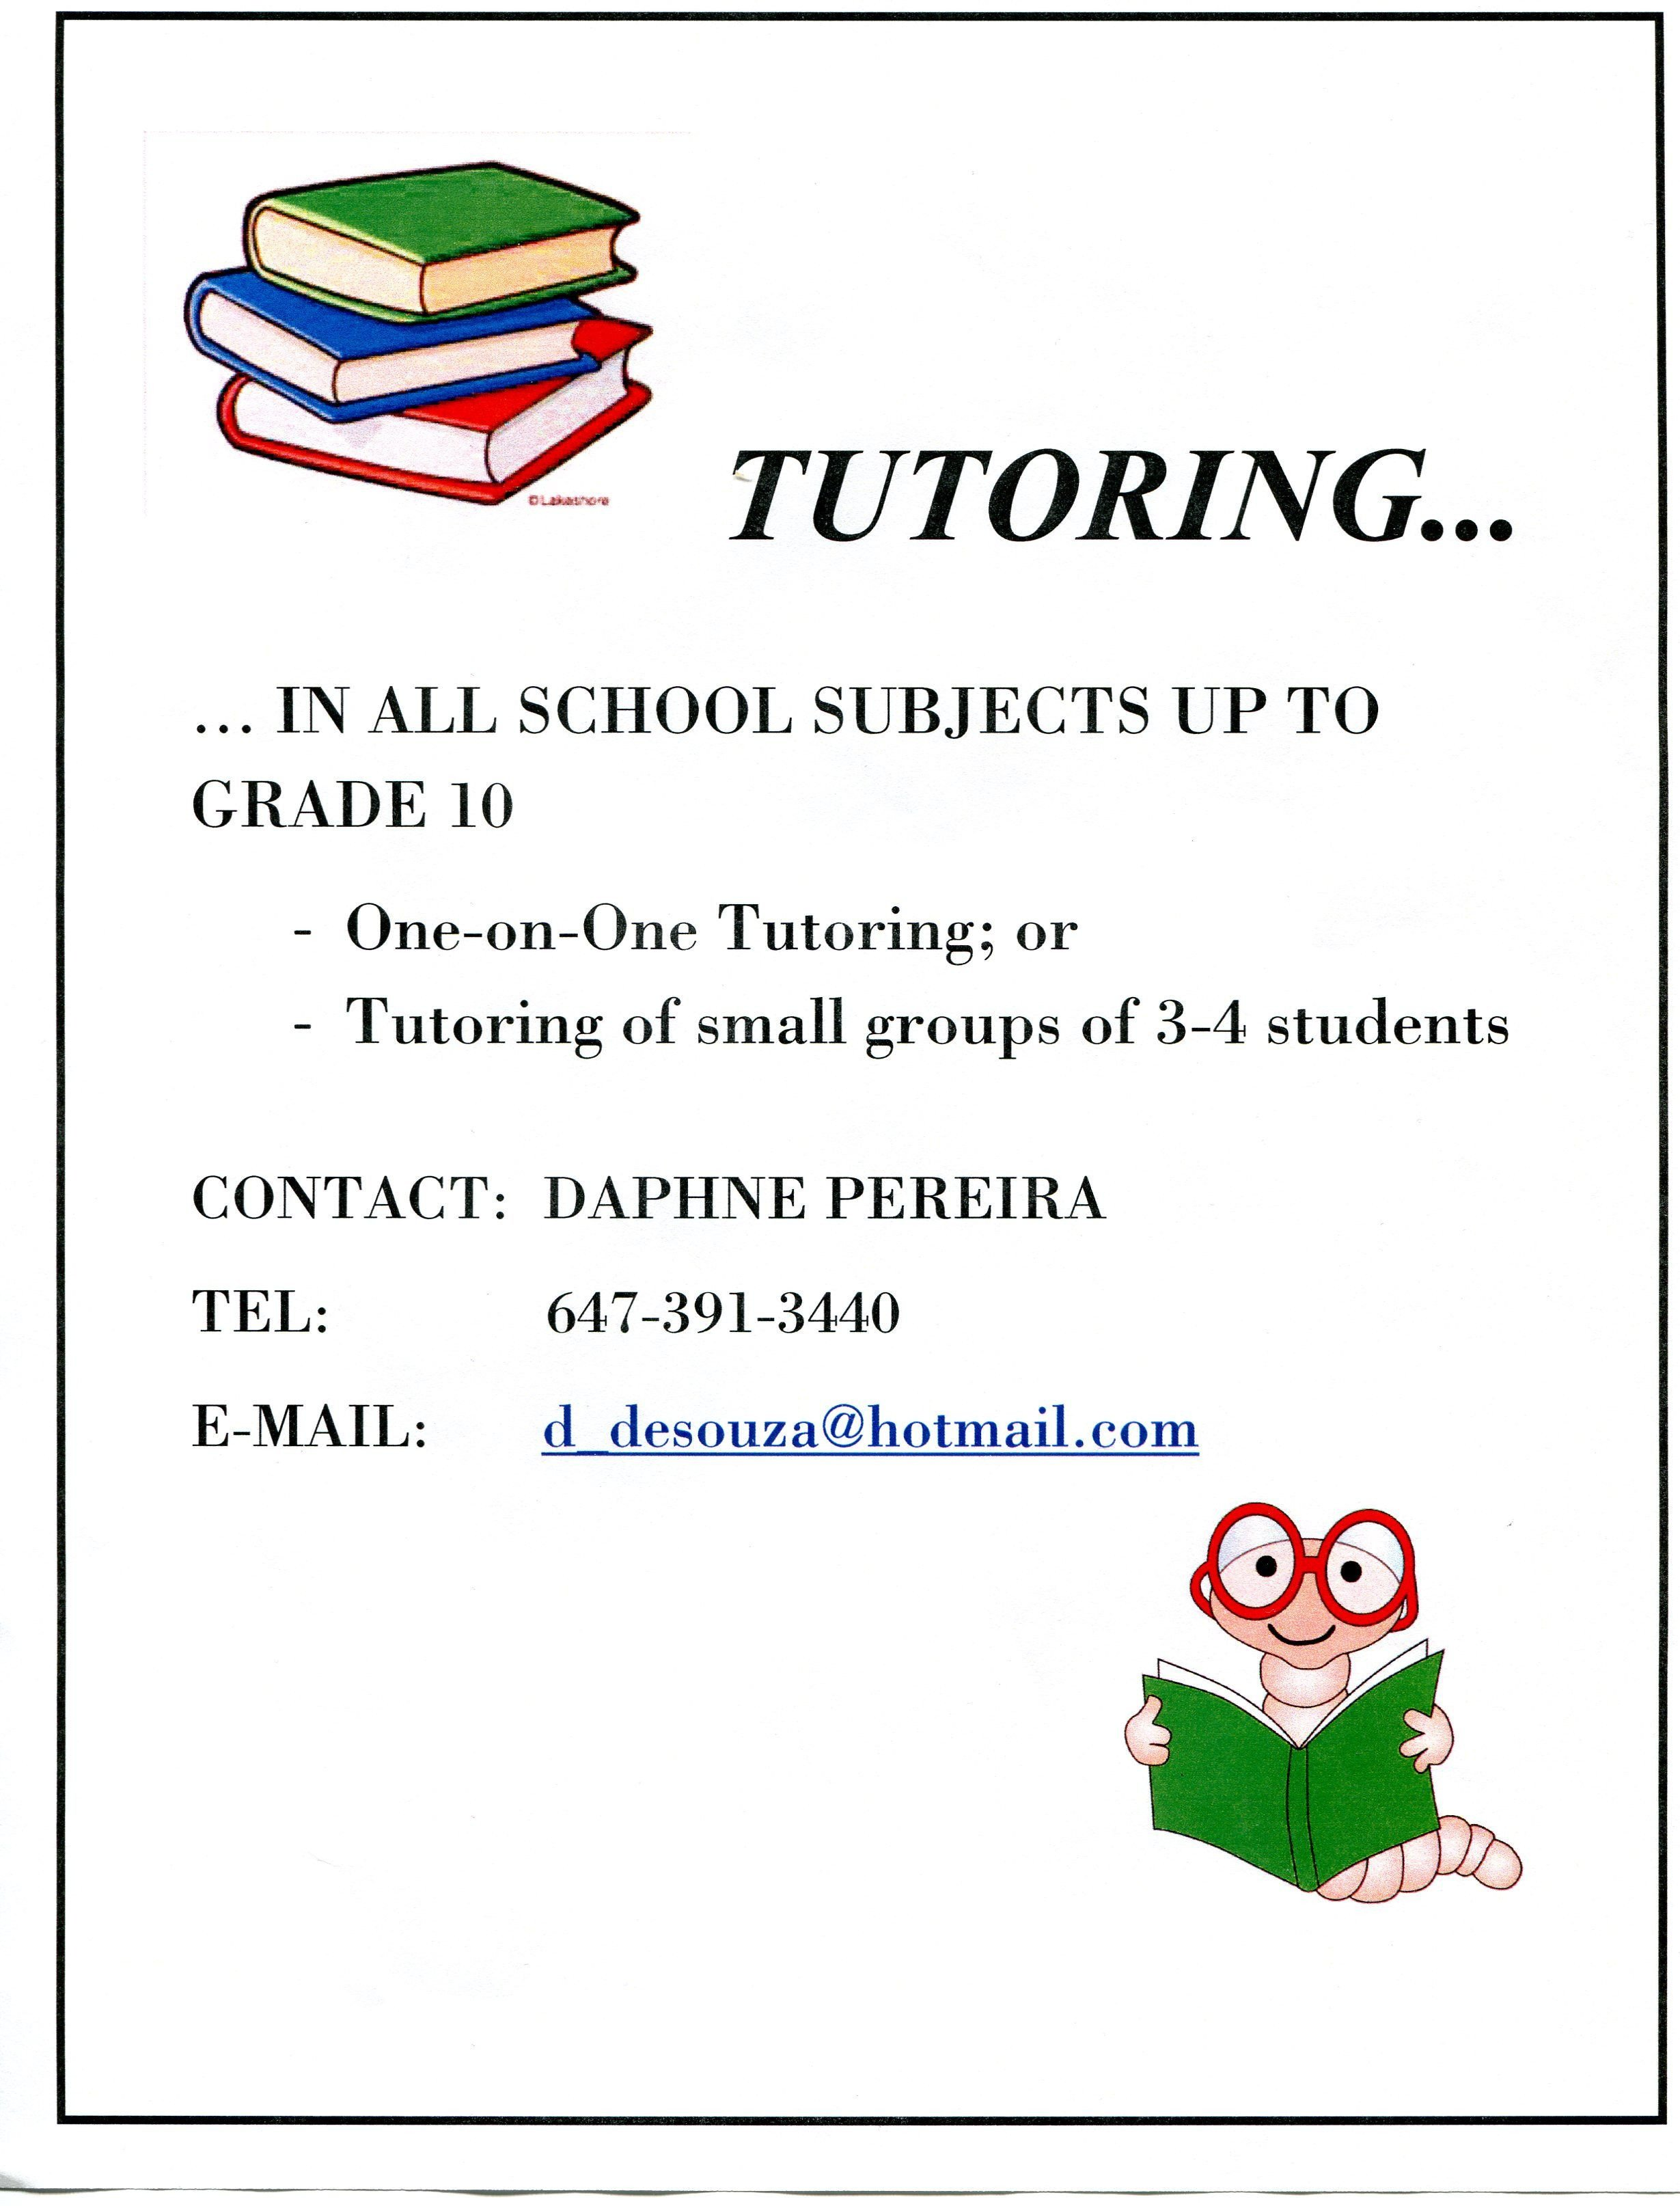 Tutoring Flyers Template Free Tutor Flying On Pinterest